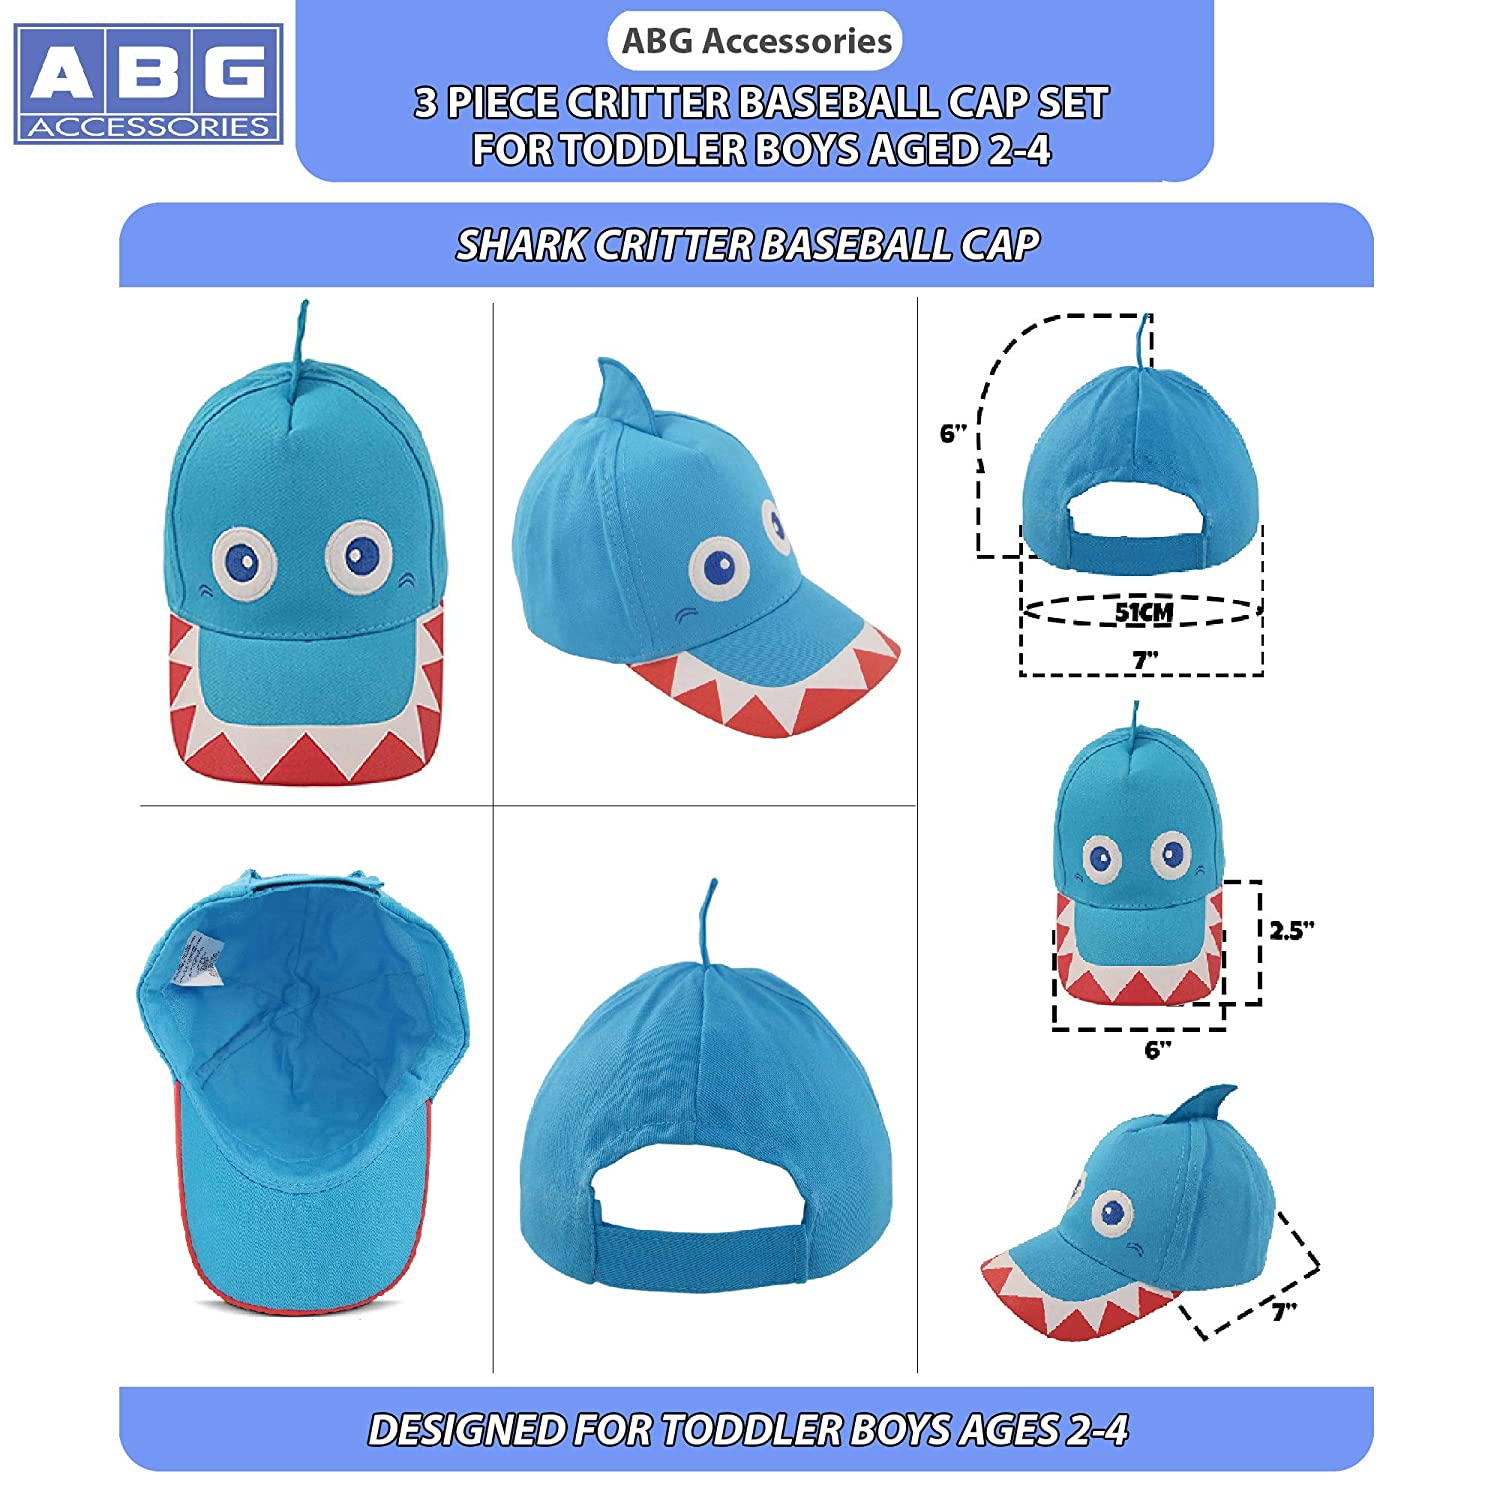 9c9bcbf4 Amazon.com: ABG Accessories Toddler Boys Cotton Baseball Cap with Assorted Animal  Critter Designs, Age 2-4 (3 Piece Variety Design Pack): Clothing